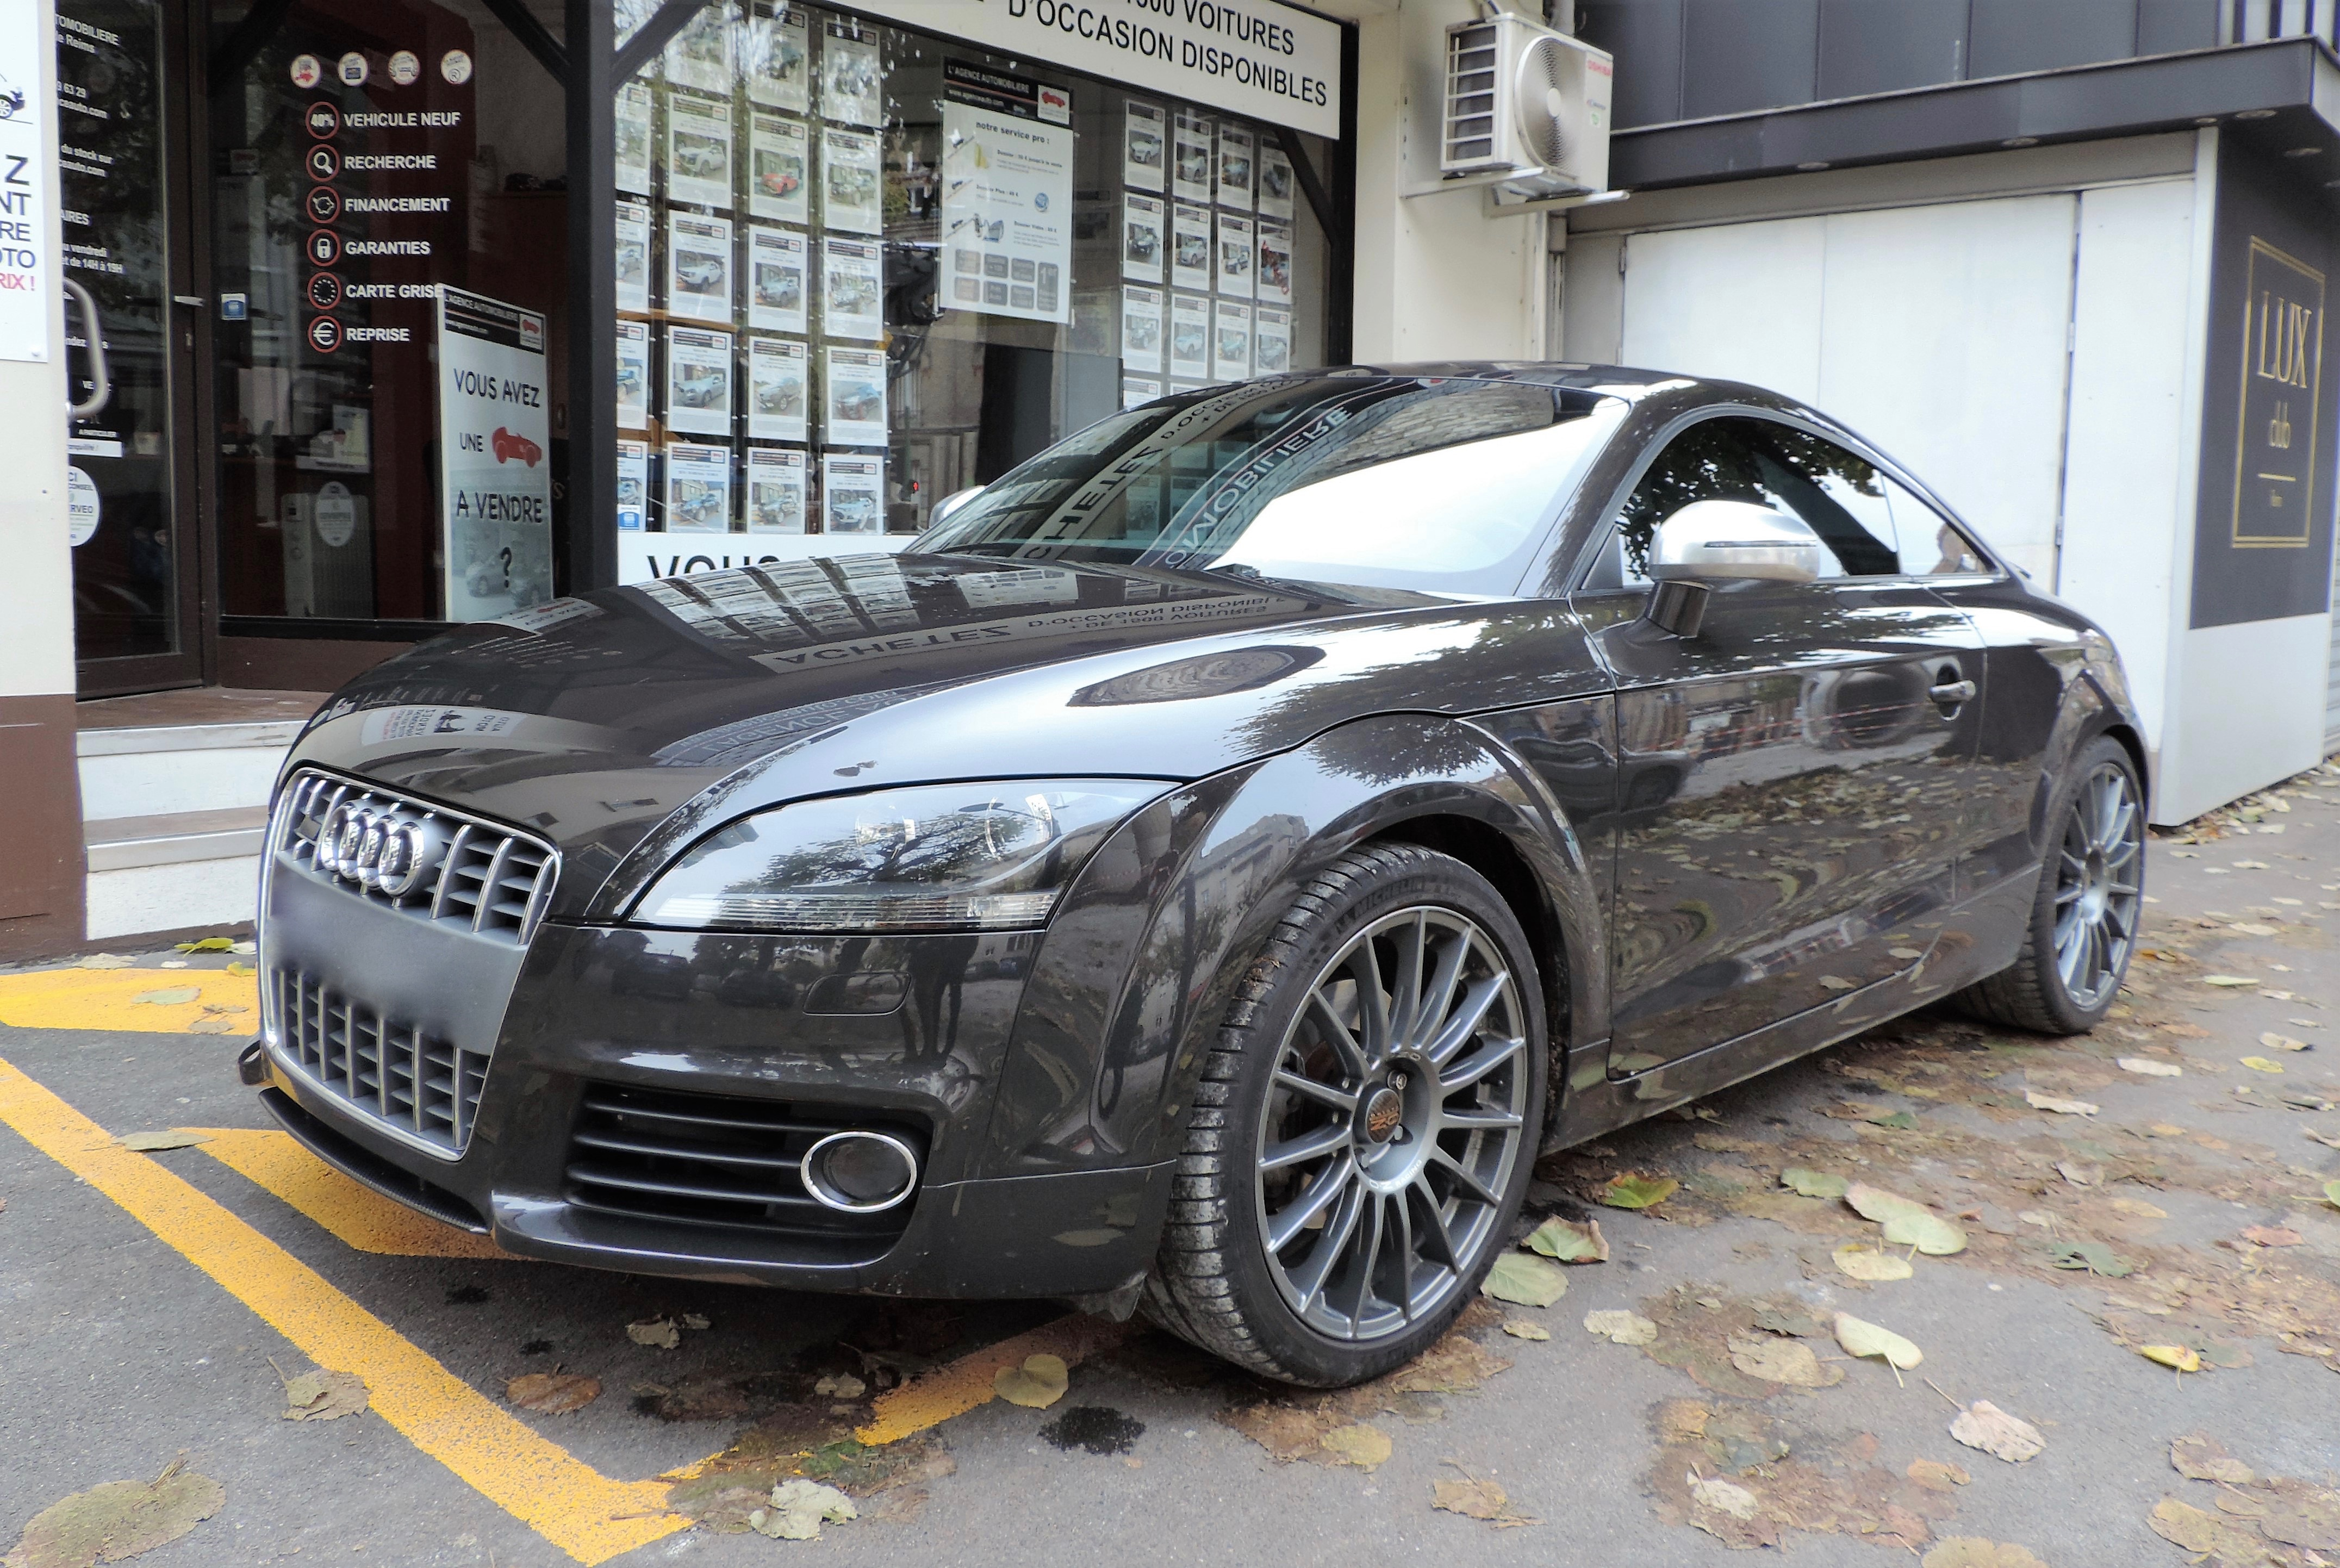 audi tt mk2 coup phase ii 1 8 tfsi 160cv bv6 pack s line auto usado reims asequible auto usado. Black Bedroom Furniture Sets. Home Design Ideas